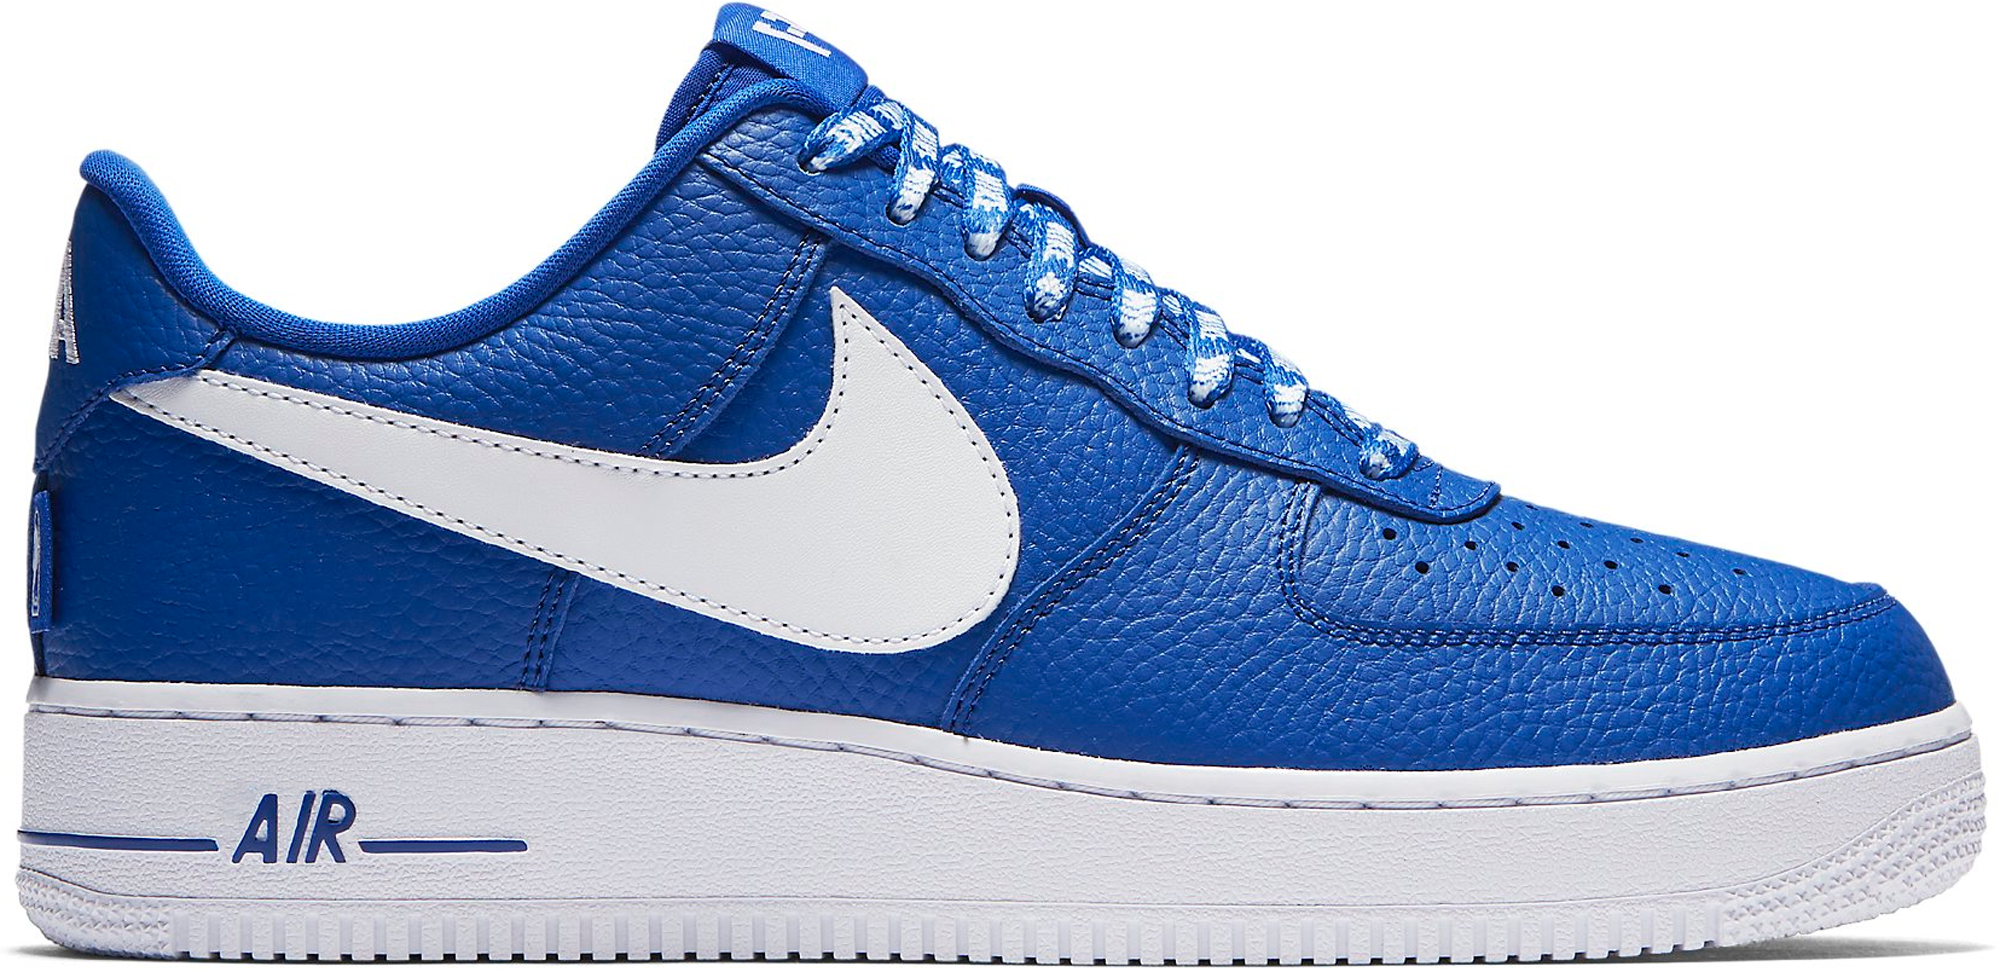 Air Force 1 Low NBA Royal